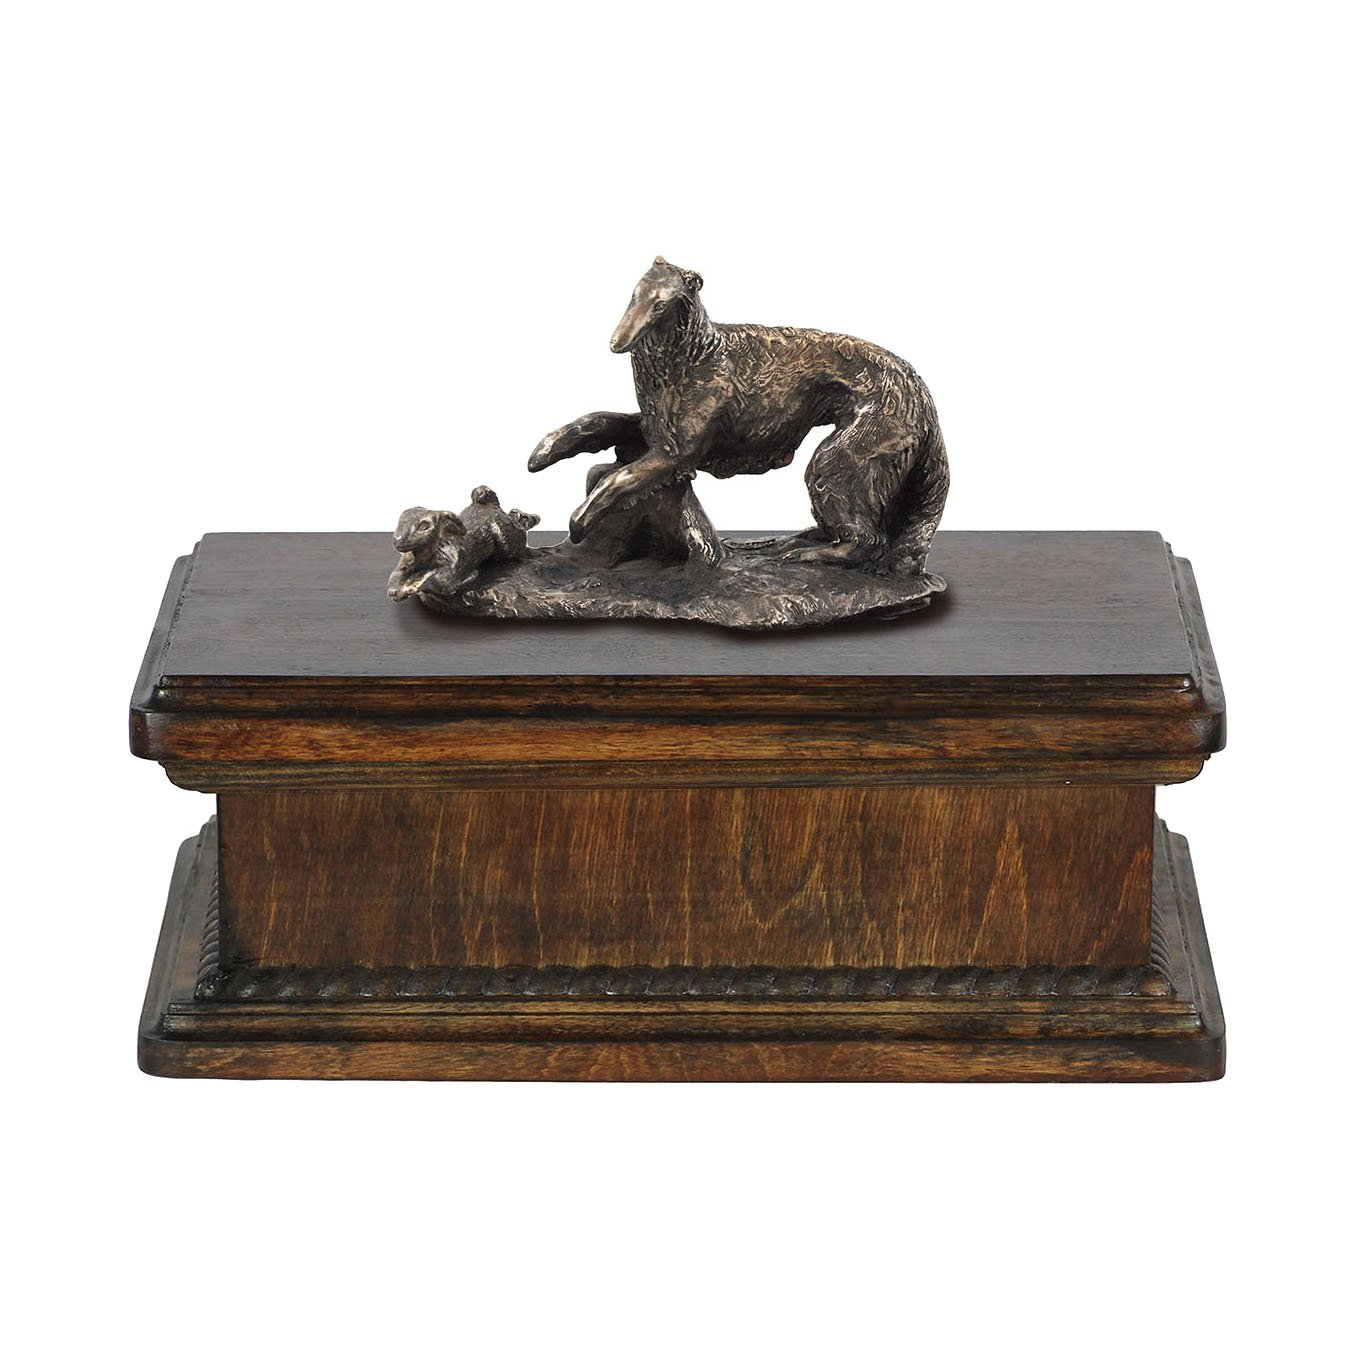 Borzoi, memorial, urn for dog's ashes, with dog statue, exclusive, ArtDog